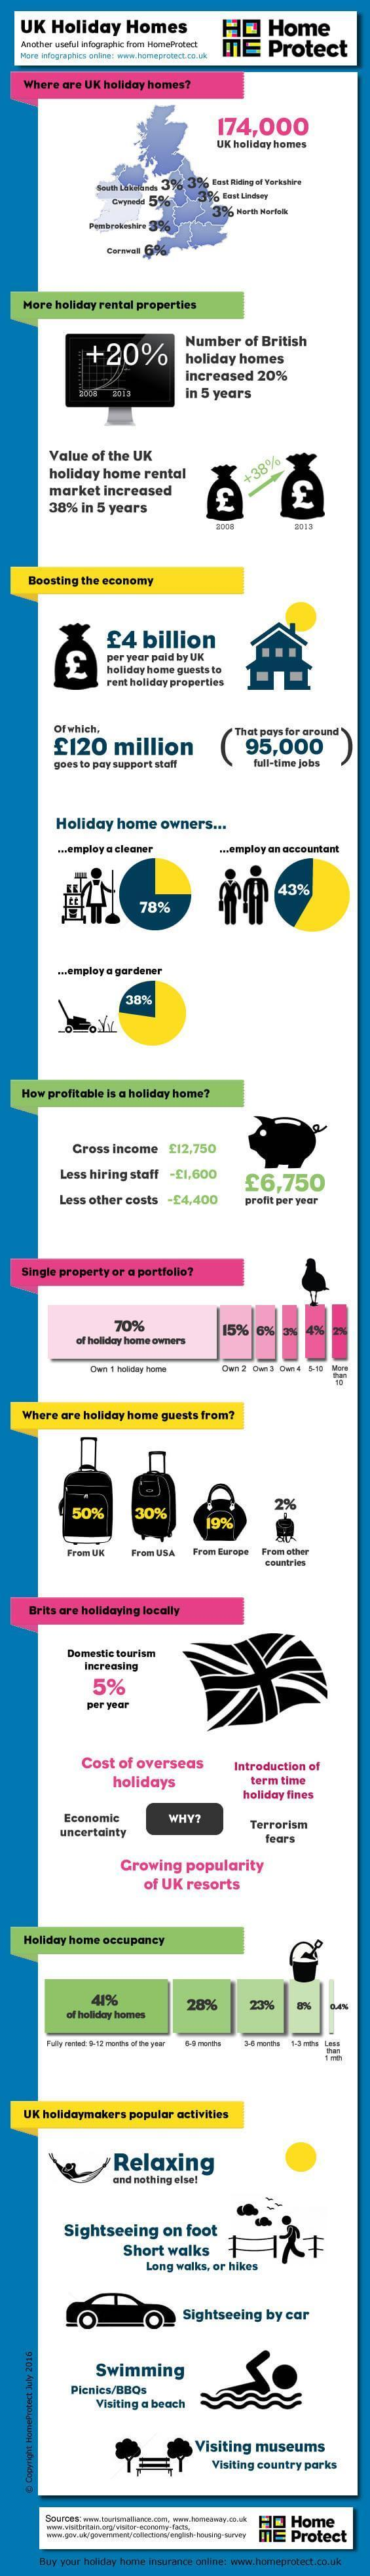 infographic uk holiday homes 2016